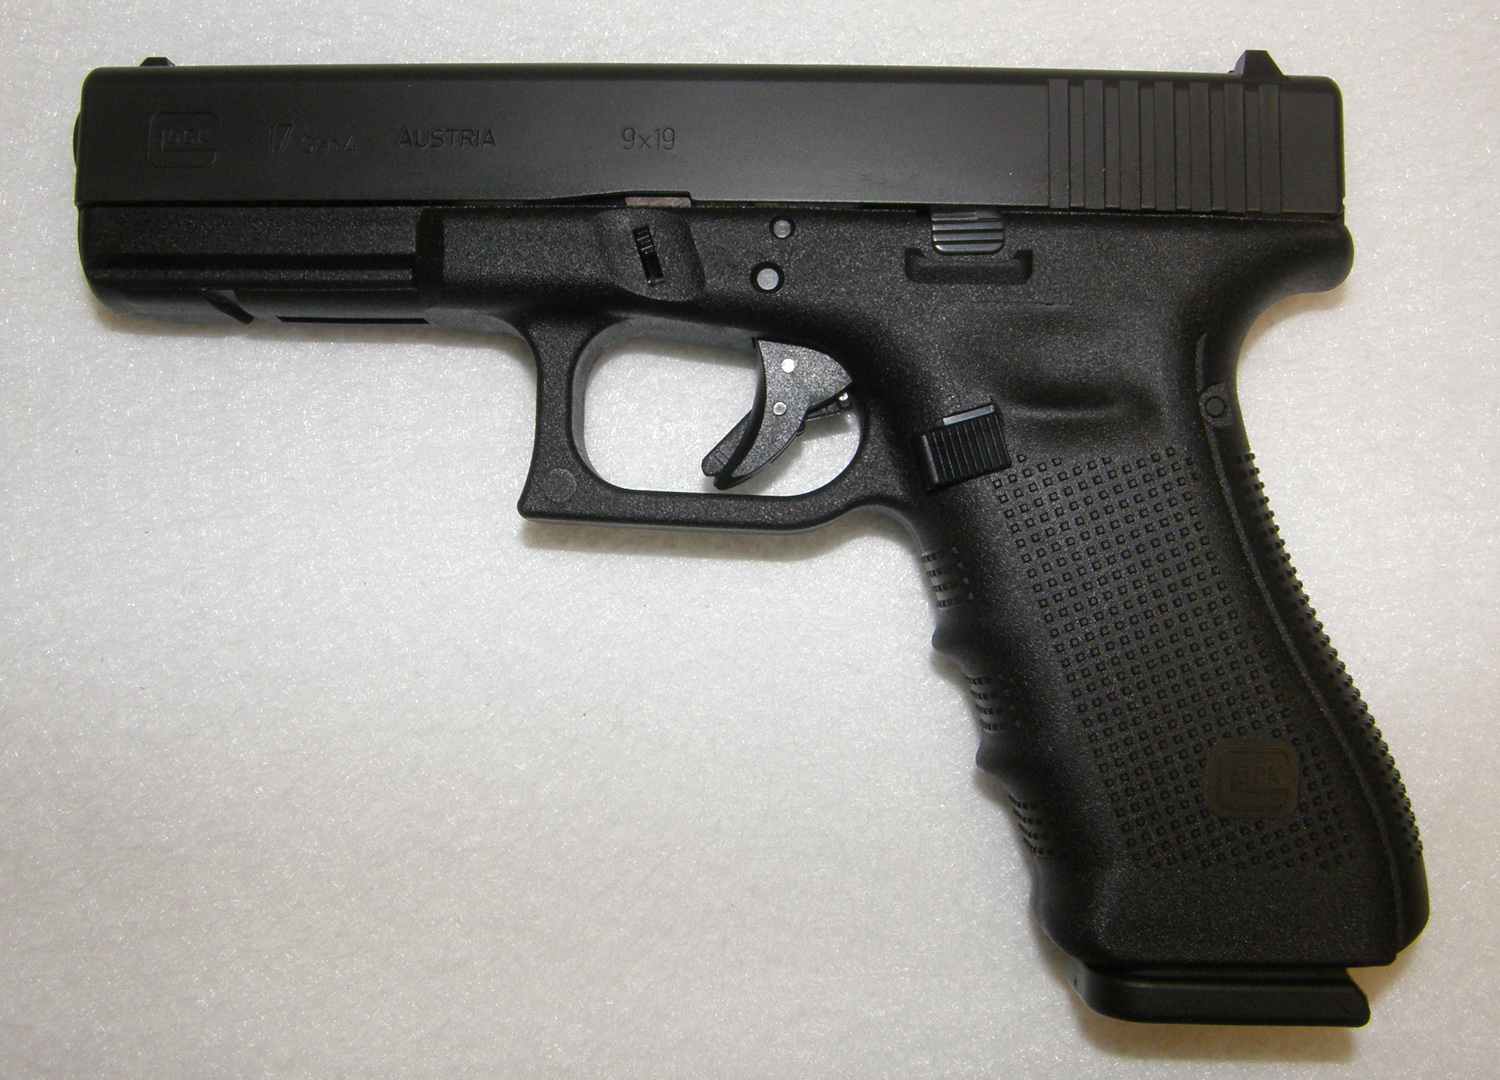 Glock 17 Gen 4 9mm Pistol (New) | Rare Collectible Guns ...